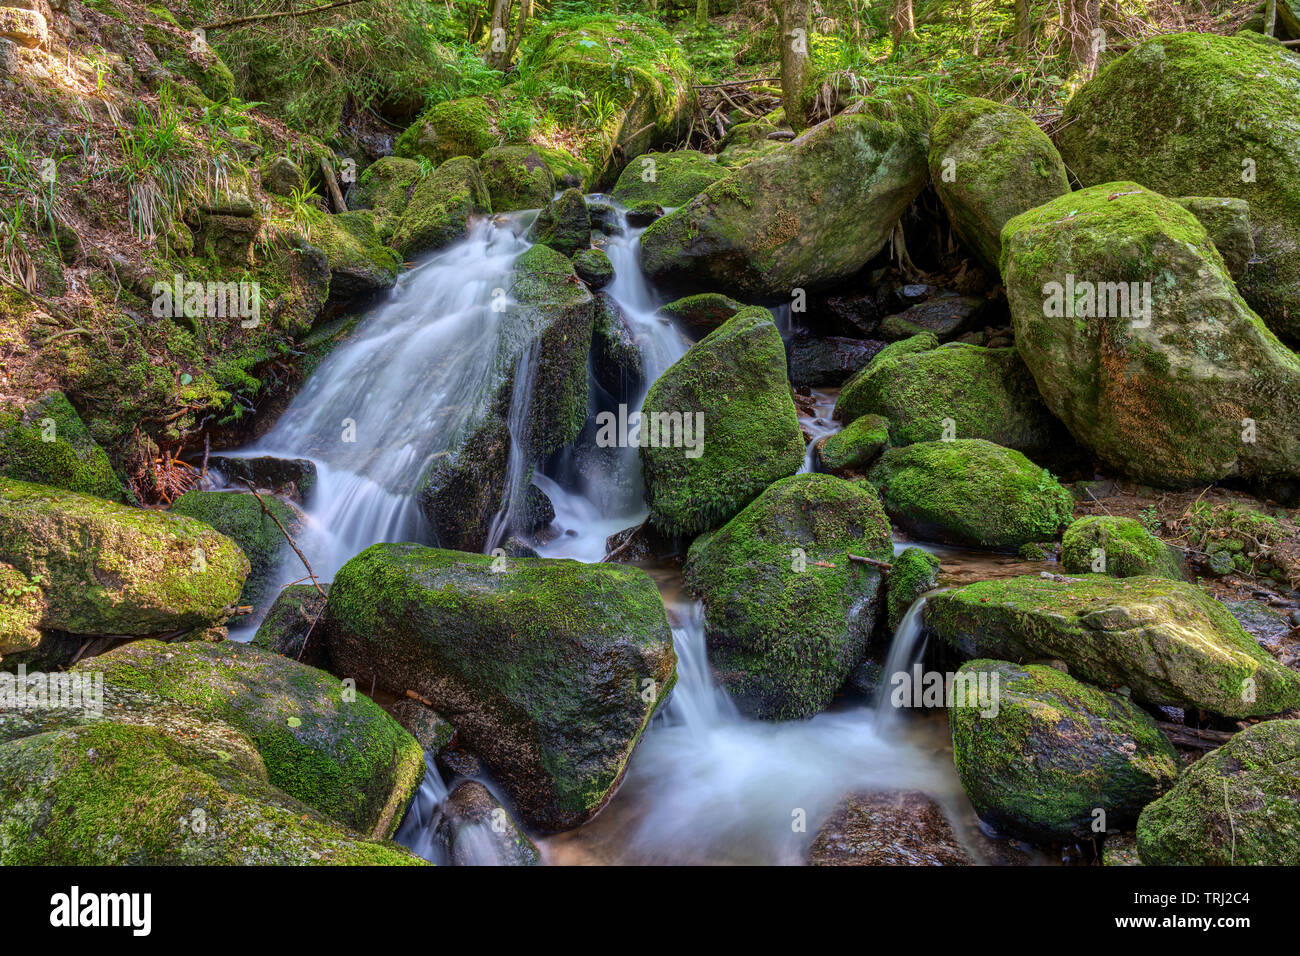 Water streaming over rocky cascades along famous Gertelbach waterfalls, Black Forest, Germany - Stock Image